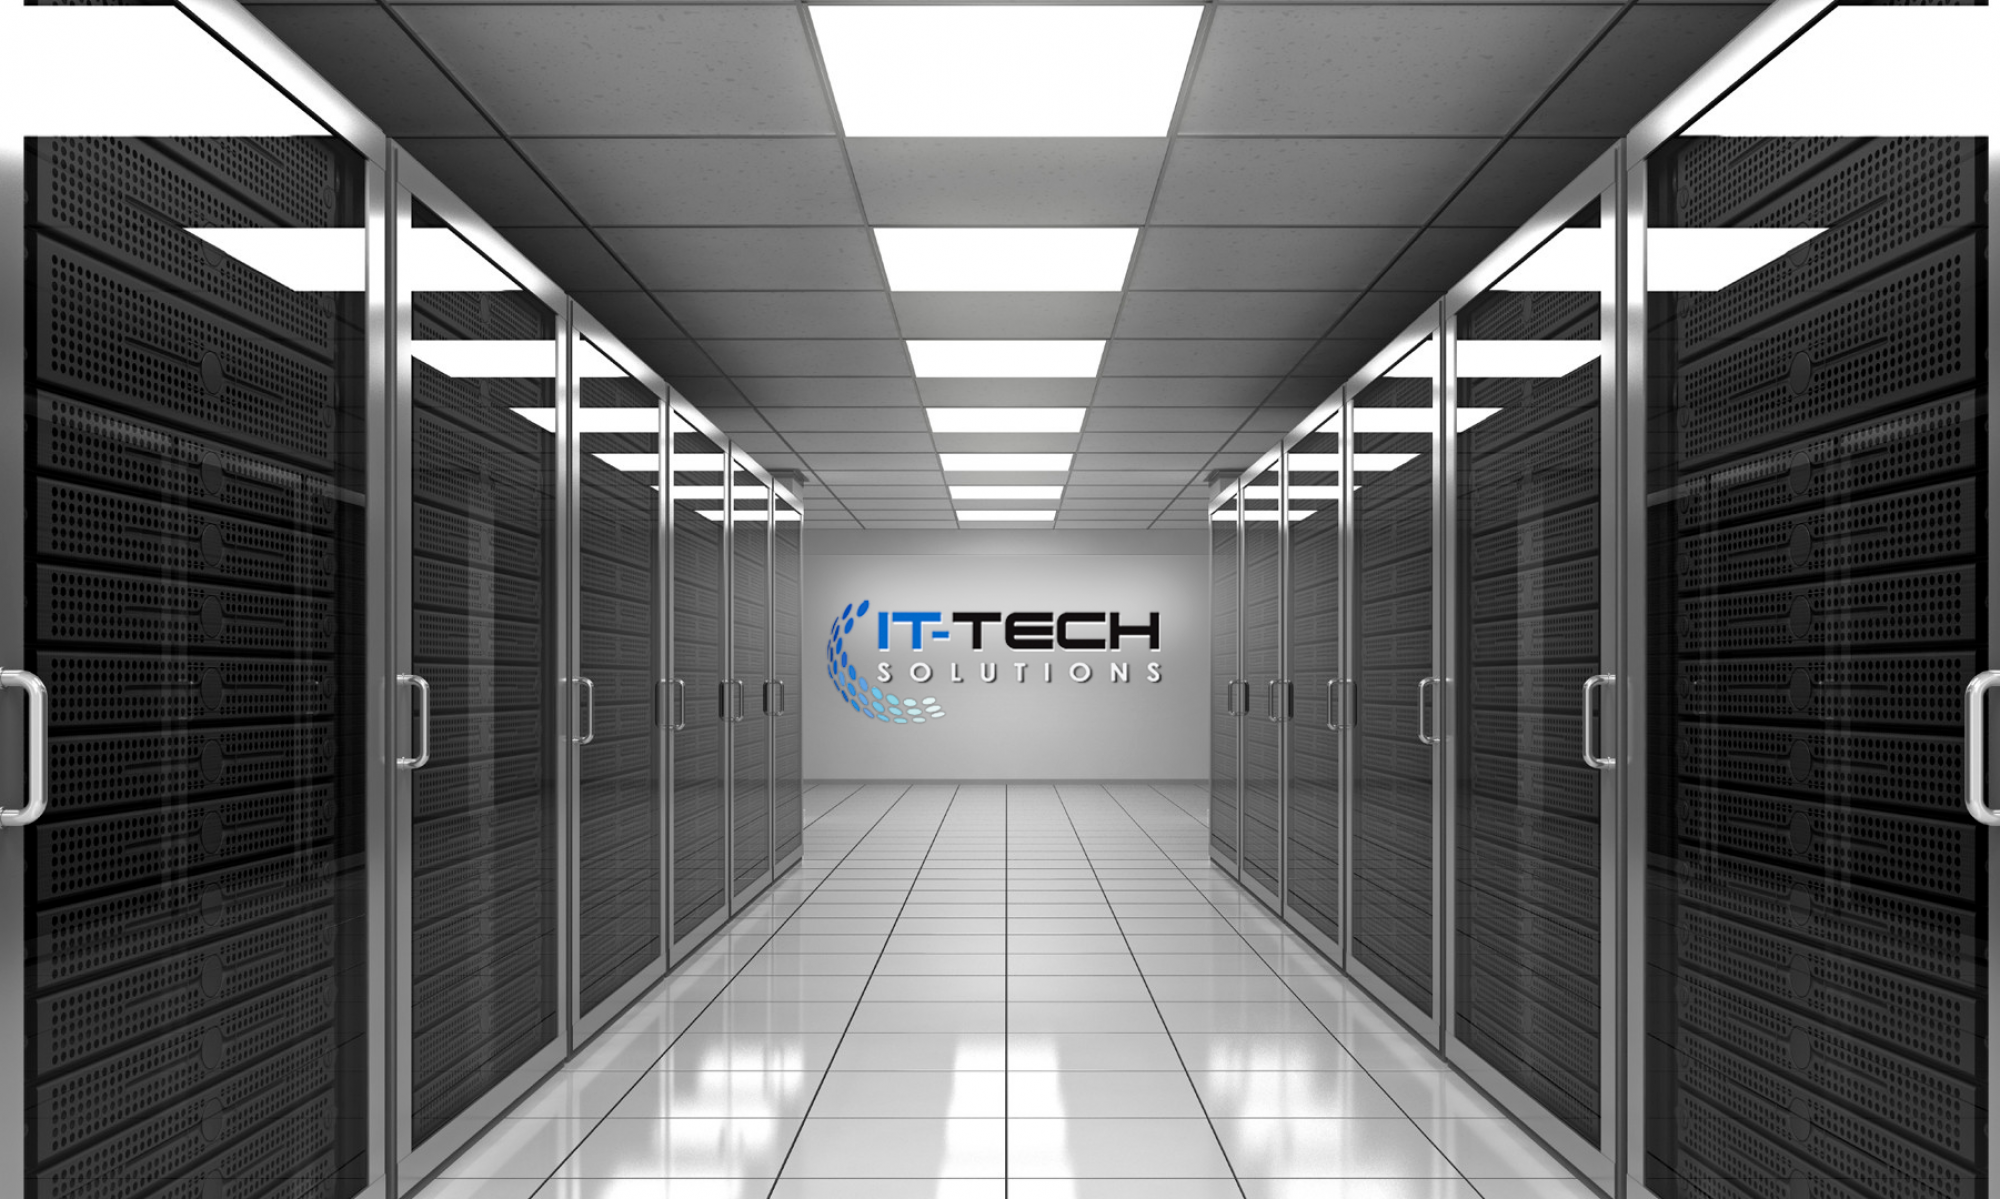 IT-Techsolutions.com